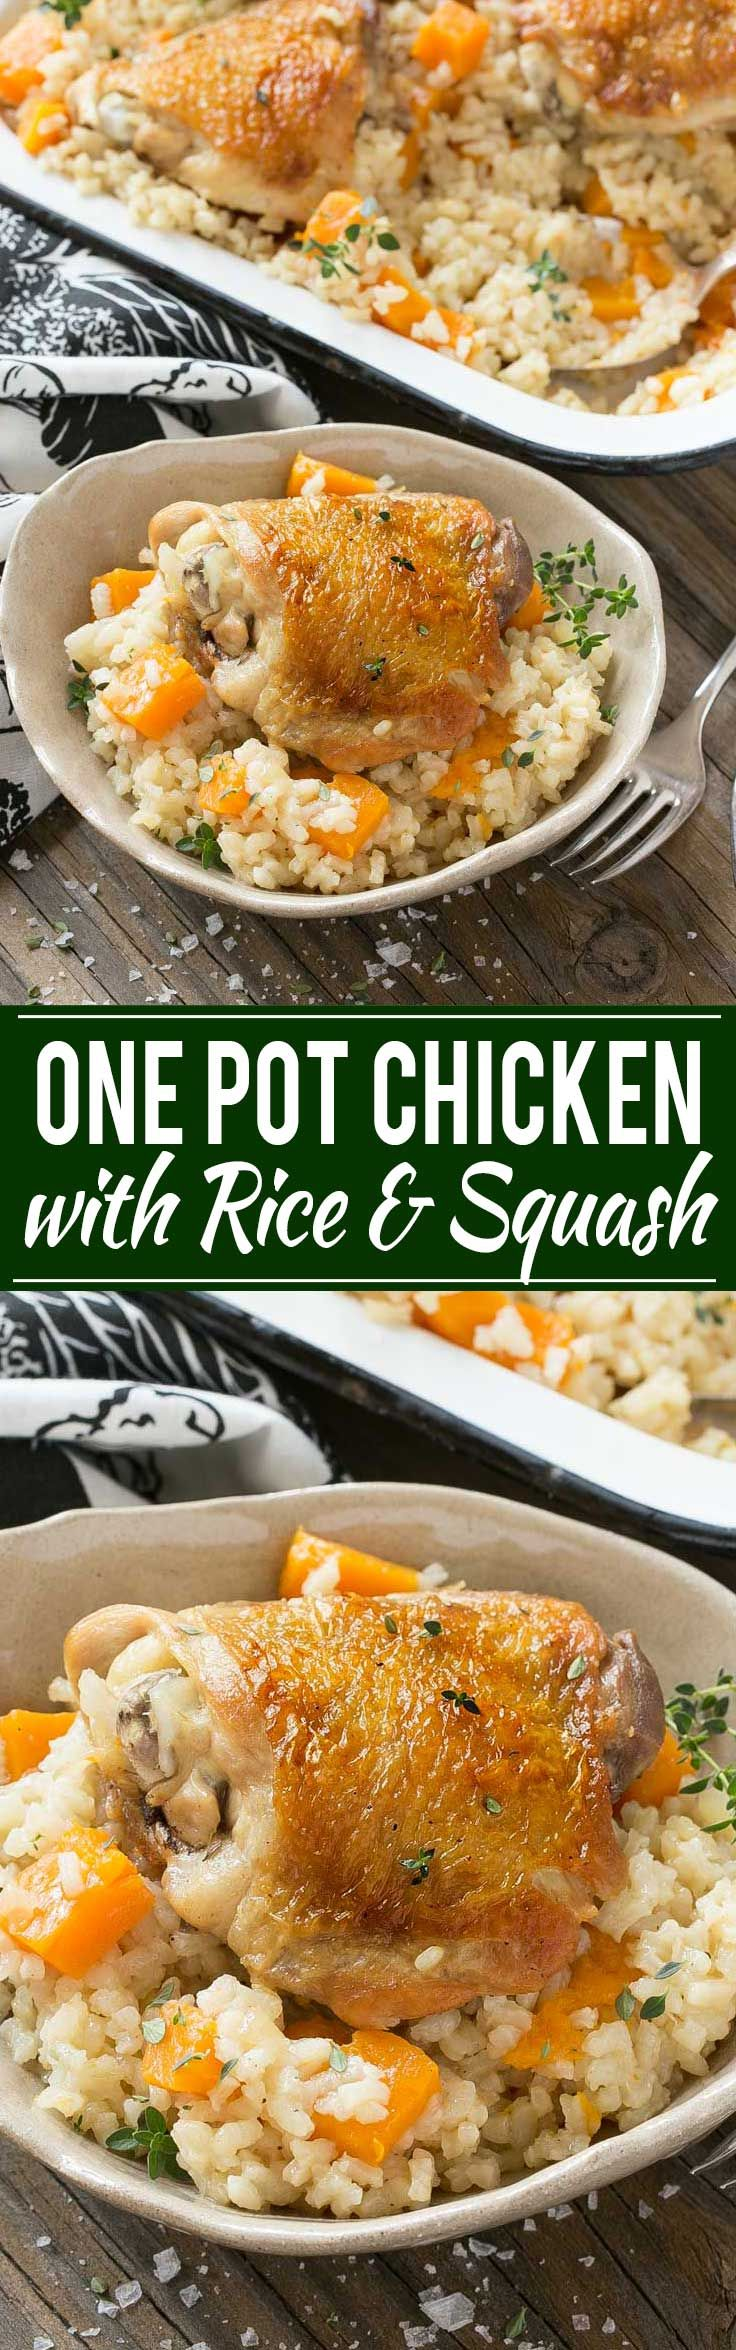 On Pot Chicken and Rice with Butternut Squash - A complete meal of chicken, rice and butternut squash all cooked together in one pot.